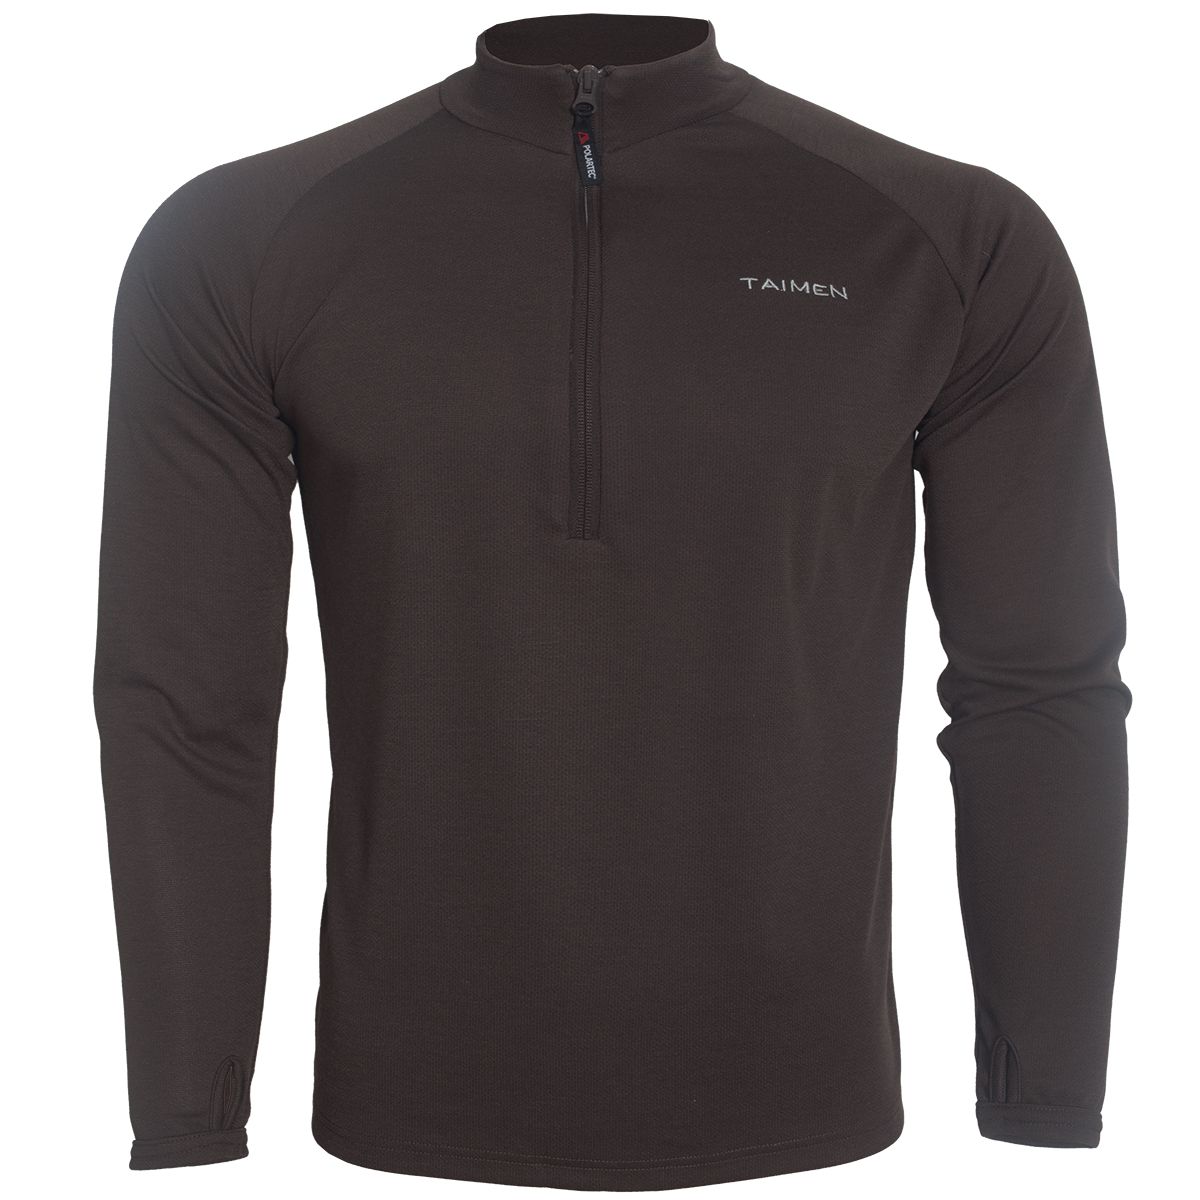 Taimen Polartec Power Dry Heavy Weight Zip Top - Turkish Coffee